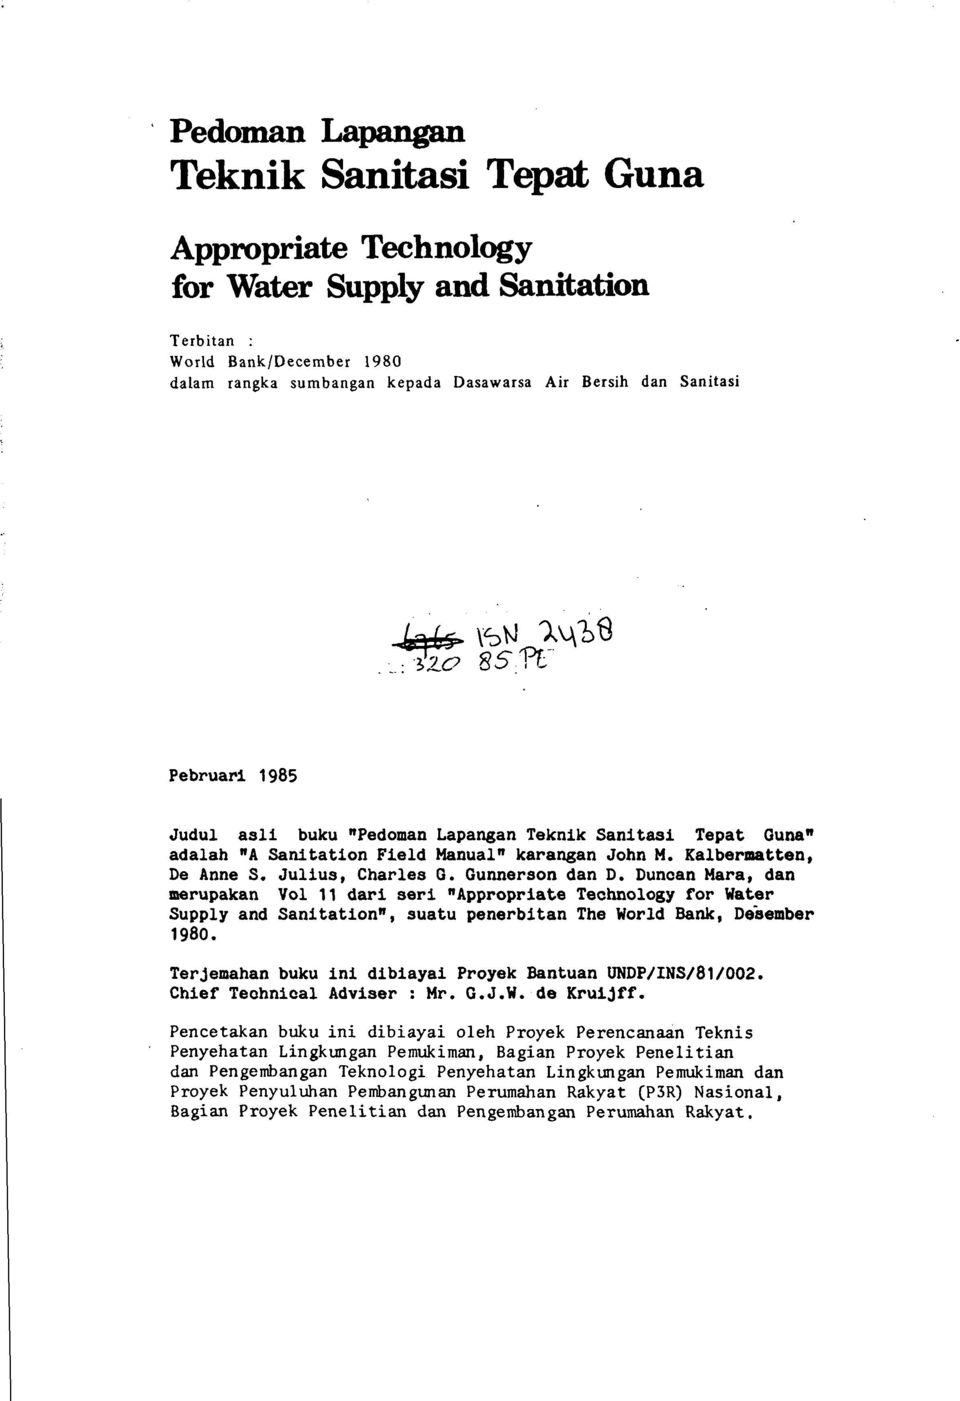 "Qunnerson dan D. Dunoan Mara, dan merupakan Vol 11 dari seri ""Appropriate Technology for Water Supply and Sanitation"", suatu penerbitan The World Bank, Desember 1980."